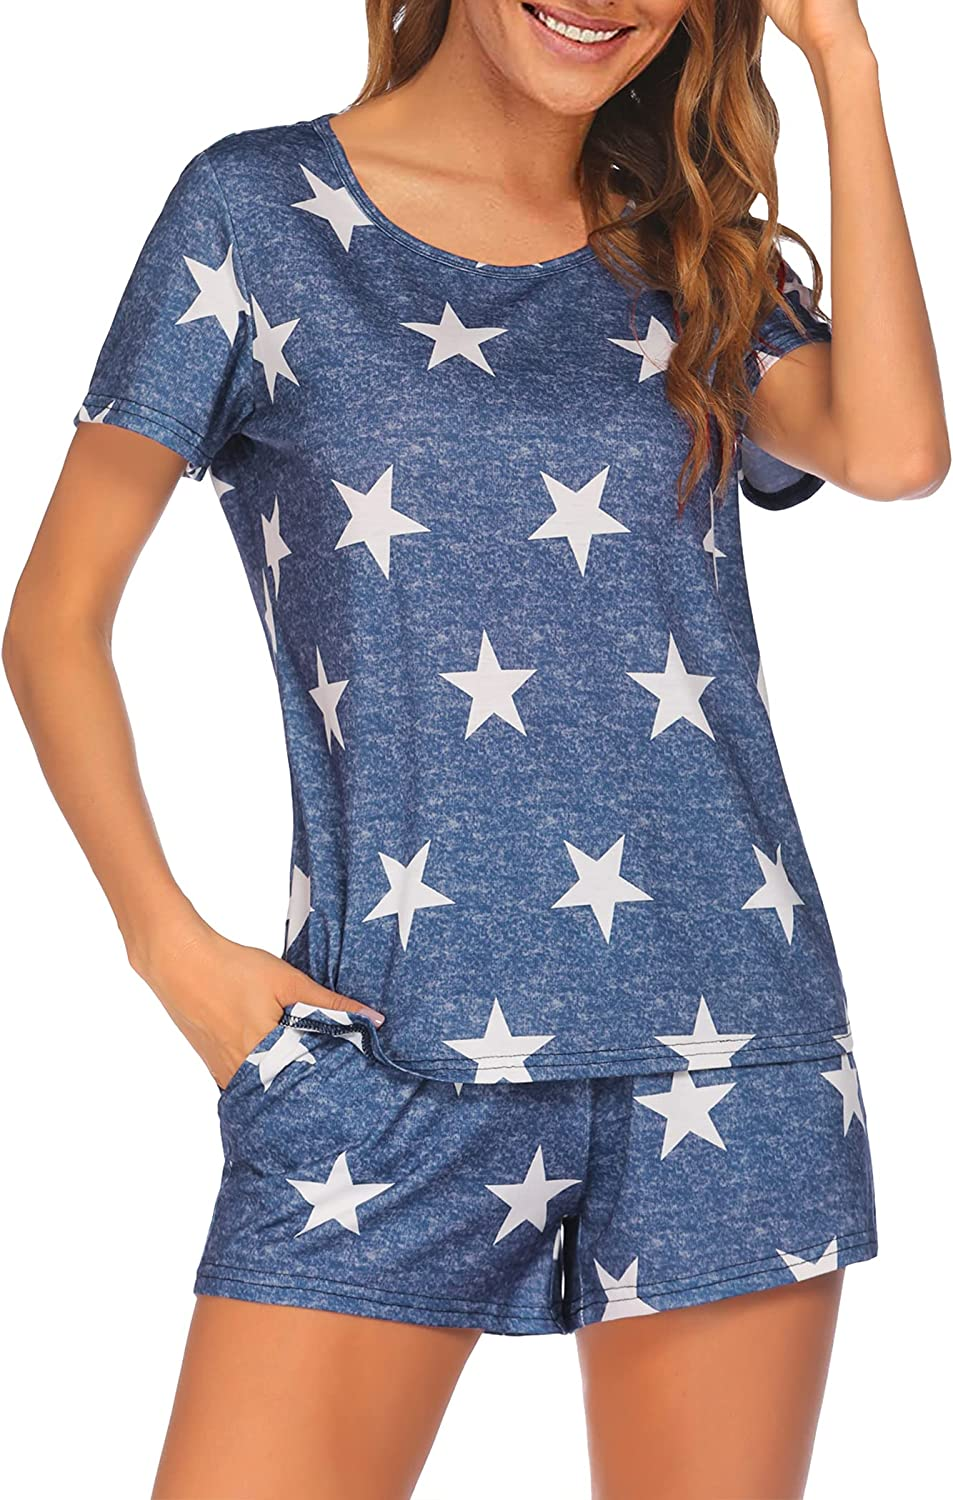 luxilooks Womens Pajamas Set Short Sleeve Sleepwear Star Print Lounge Sets Soft Pjs Top and Shorts with Pockets S-XXL